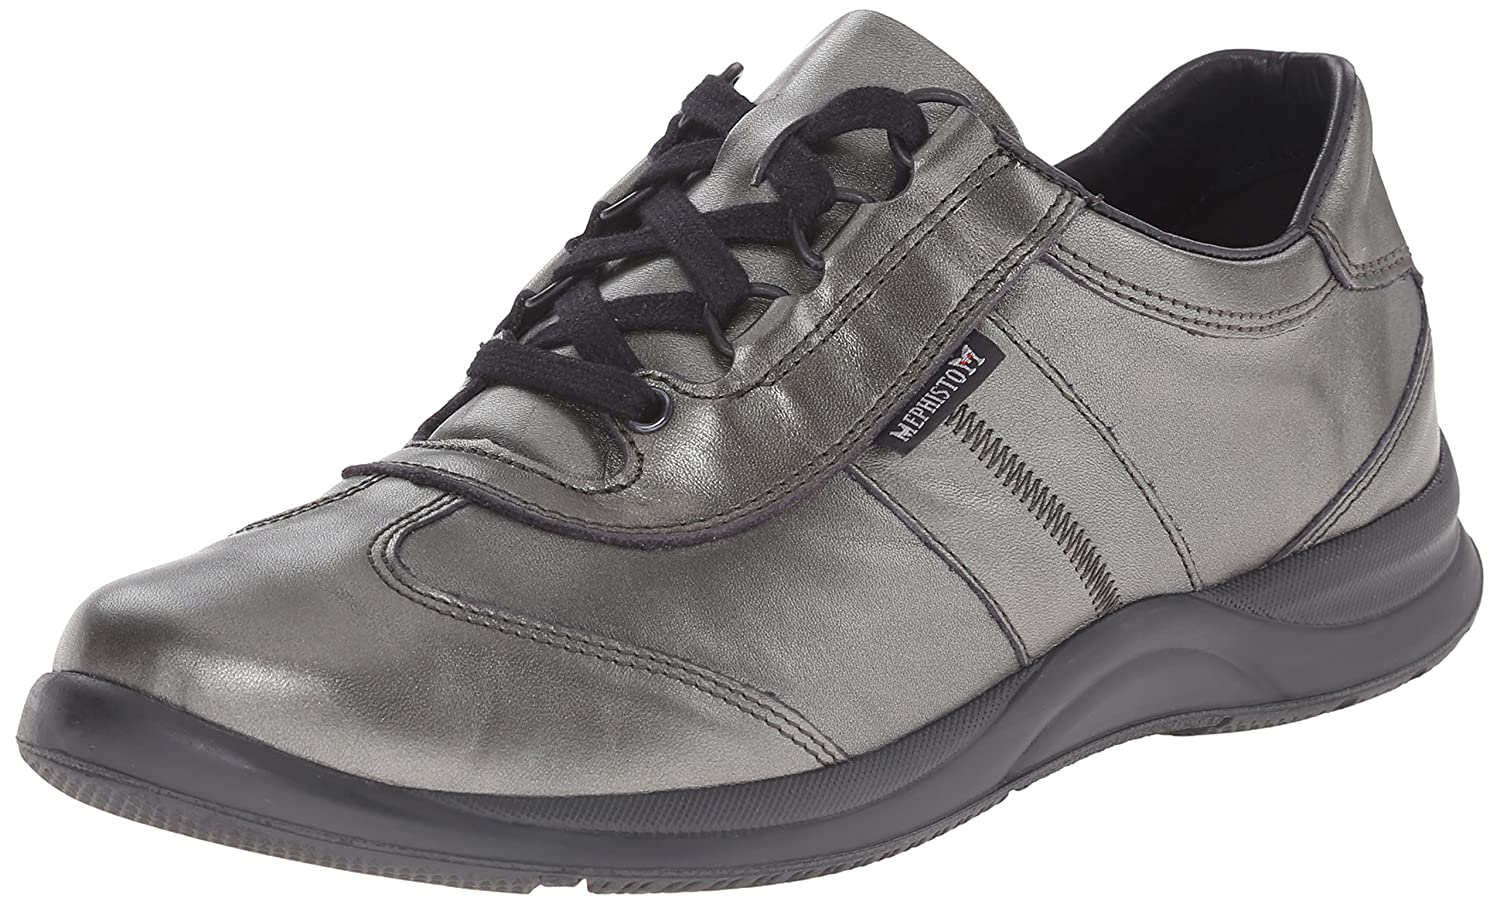 Mephisto Women's Laser Walking Shoe B00UJUU4BG 5.5 B(M) US|Dark Grey Perl Calfskin